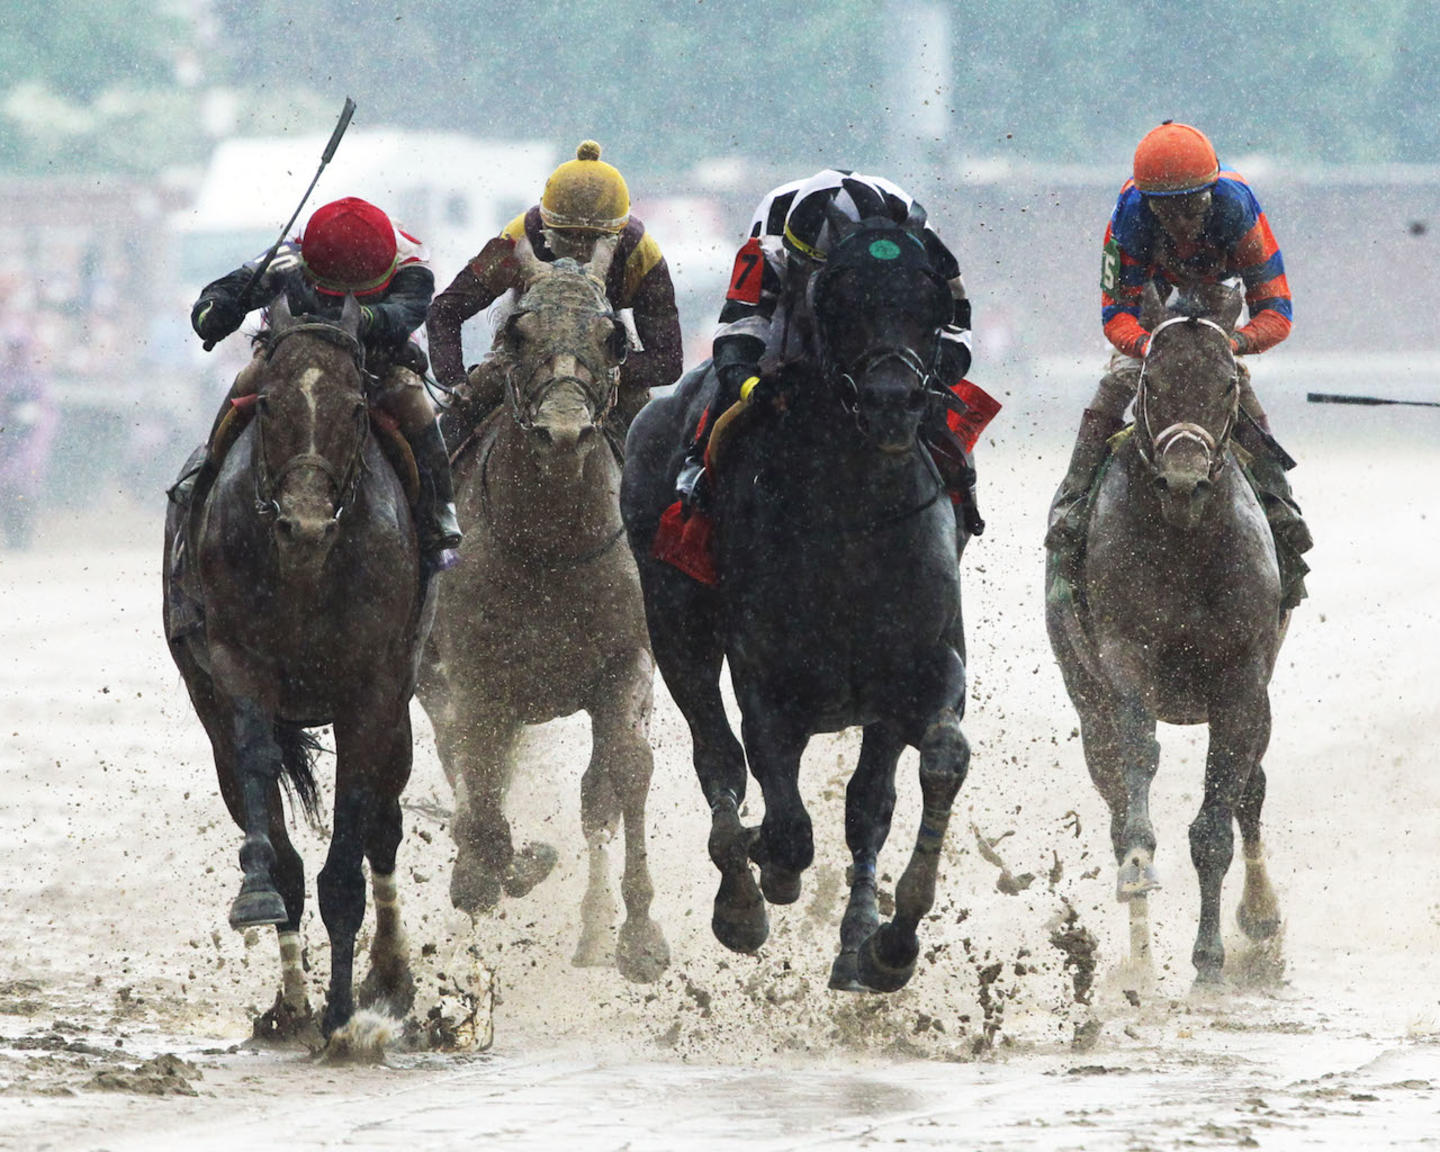 LIMOUSINE LIBERAL - The Churchill Downs G2 - 84th Running - 05-05-18 - R08 - CD - Head On Finish 01